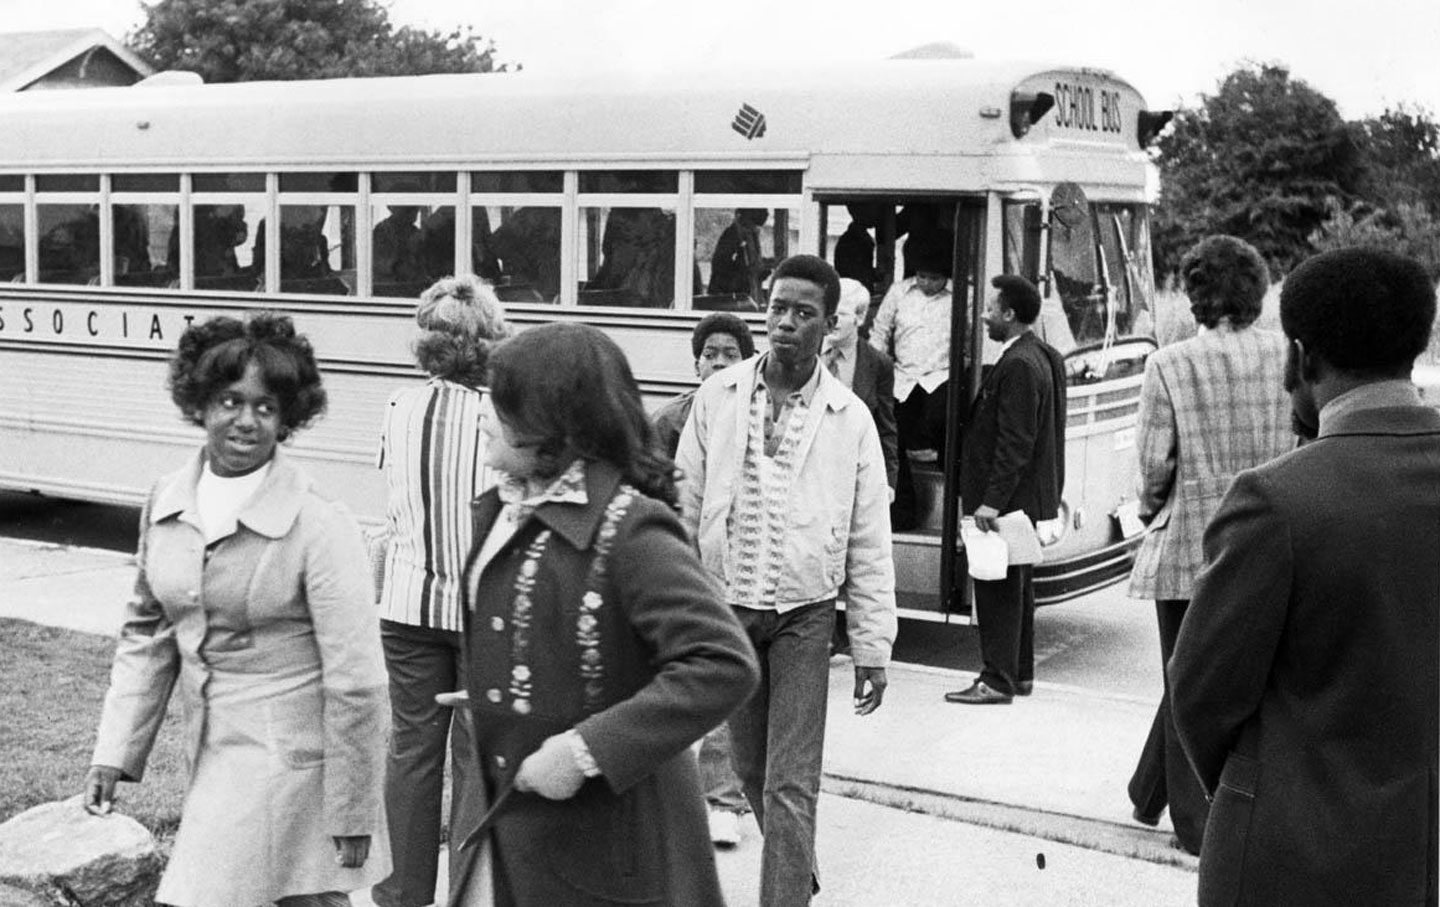 Crosstown commute: From 1978 to 1999, a busing program helped improve the racial mix in Seattle's public schools. (Credit: Museum of History & Industry, Seattle Post-Intelligencer Collection [2000.107])